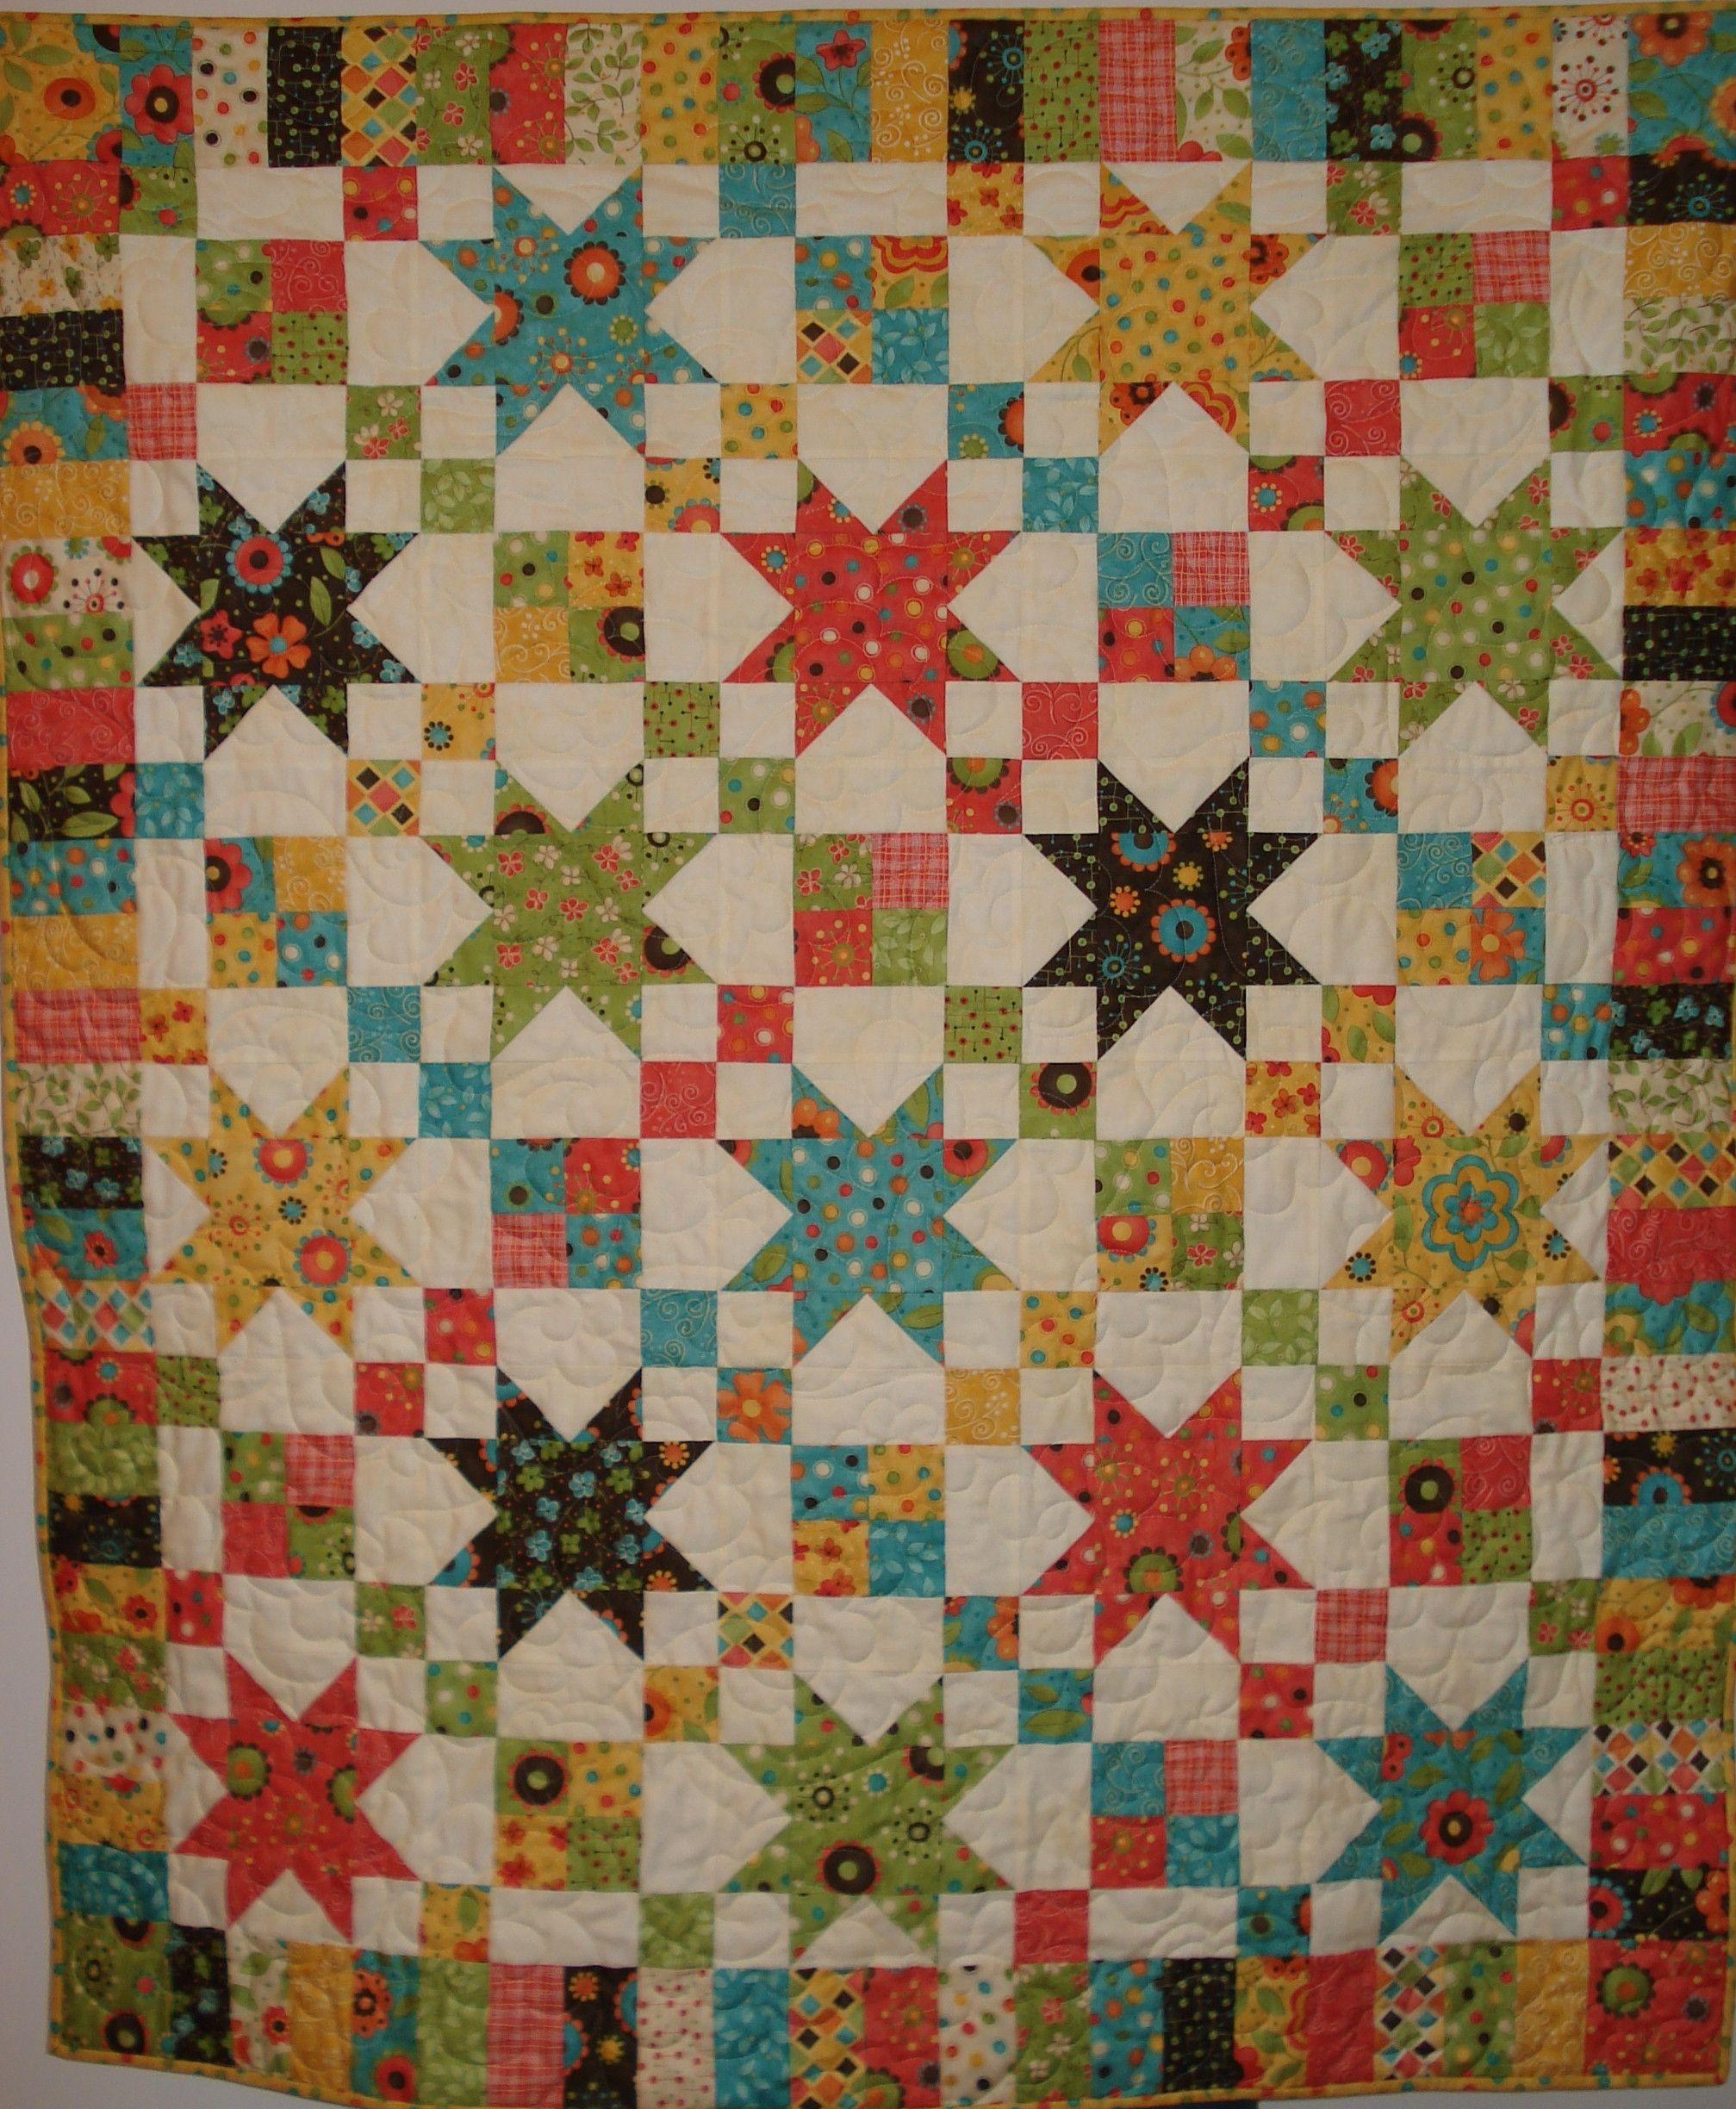 Quilt Patterns Made With Jelly Rolls : jelly roll quilts Cindy made the Star Chain pattern from my book, Jelly Roll Quilts ... one ...